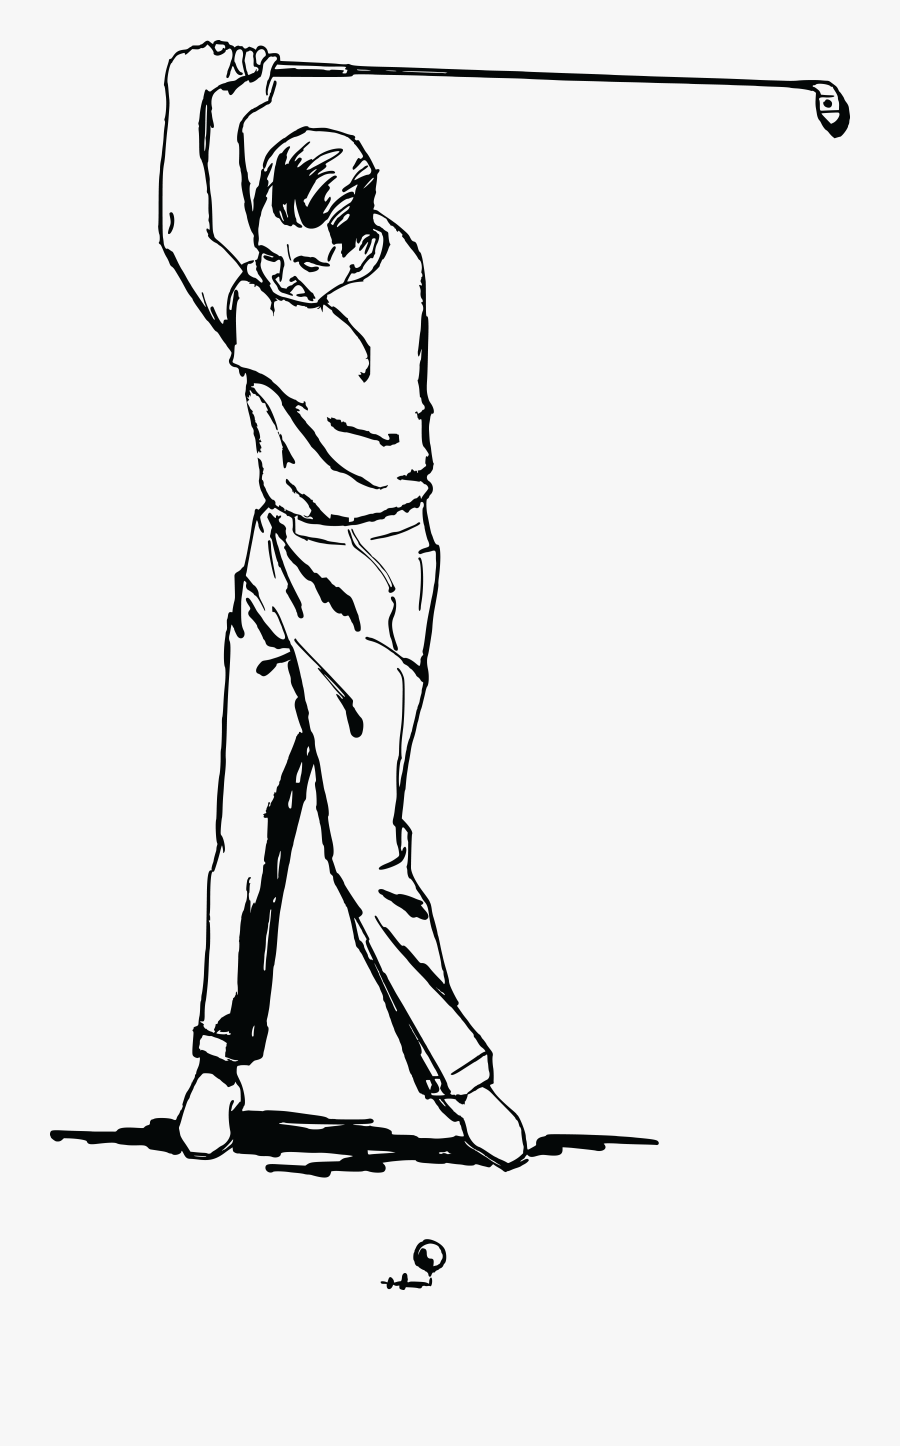 Golf Clipart Outline Person - Man Golf Clipart Black And White, Transparent Clipart